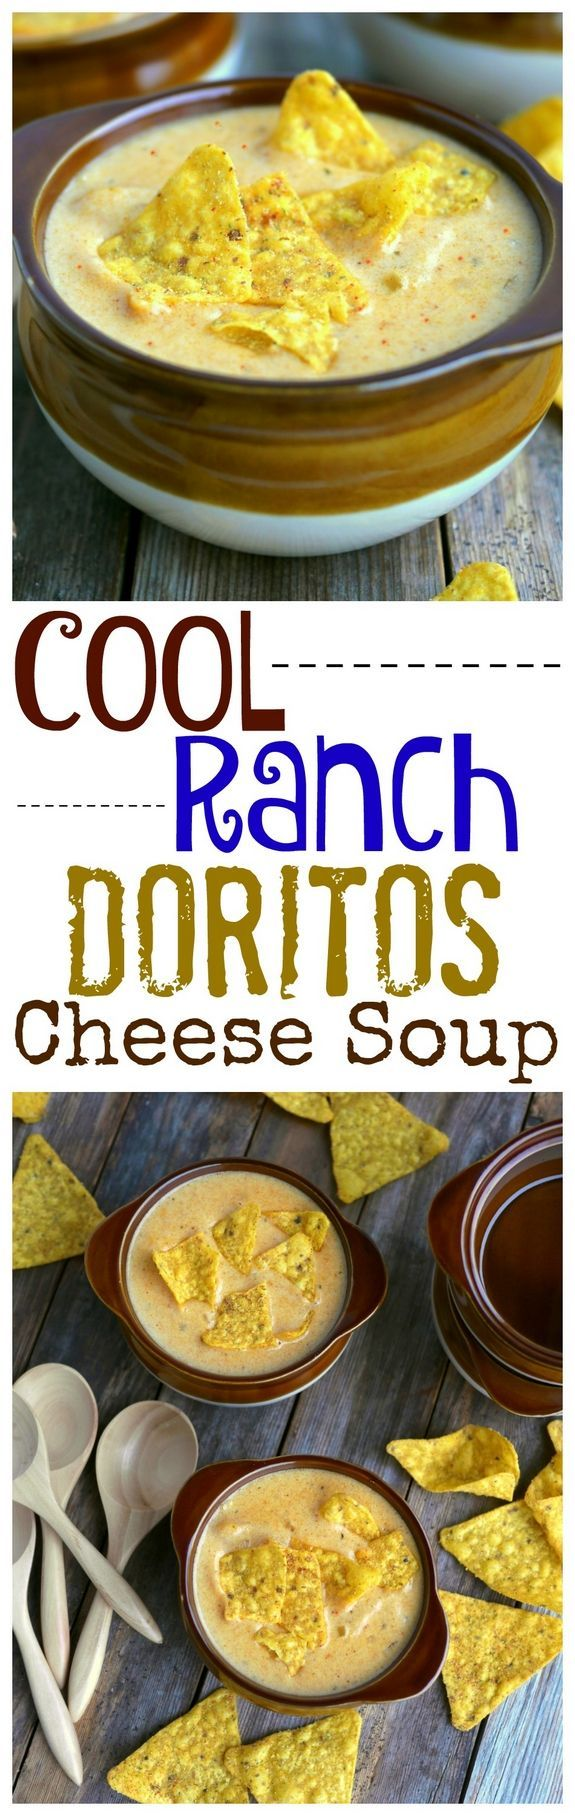 Cool Ranch Doritos Cheese Soup is going to knock your socks off! | NoblePig.com